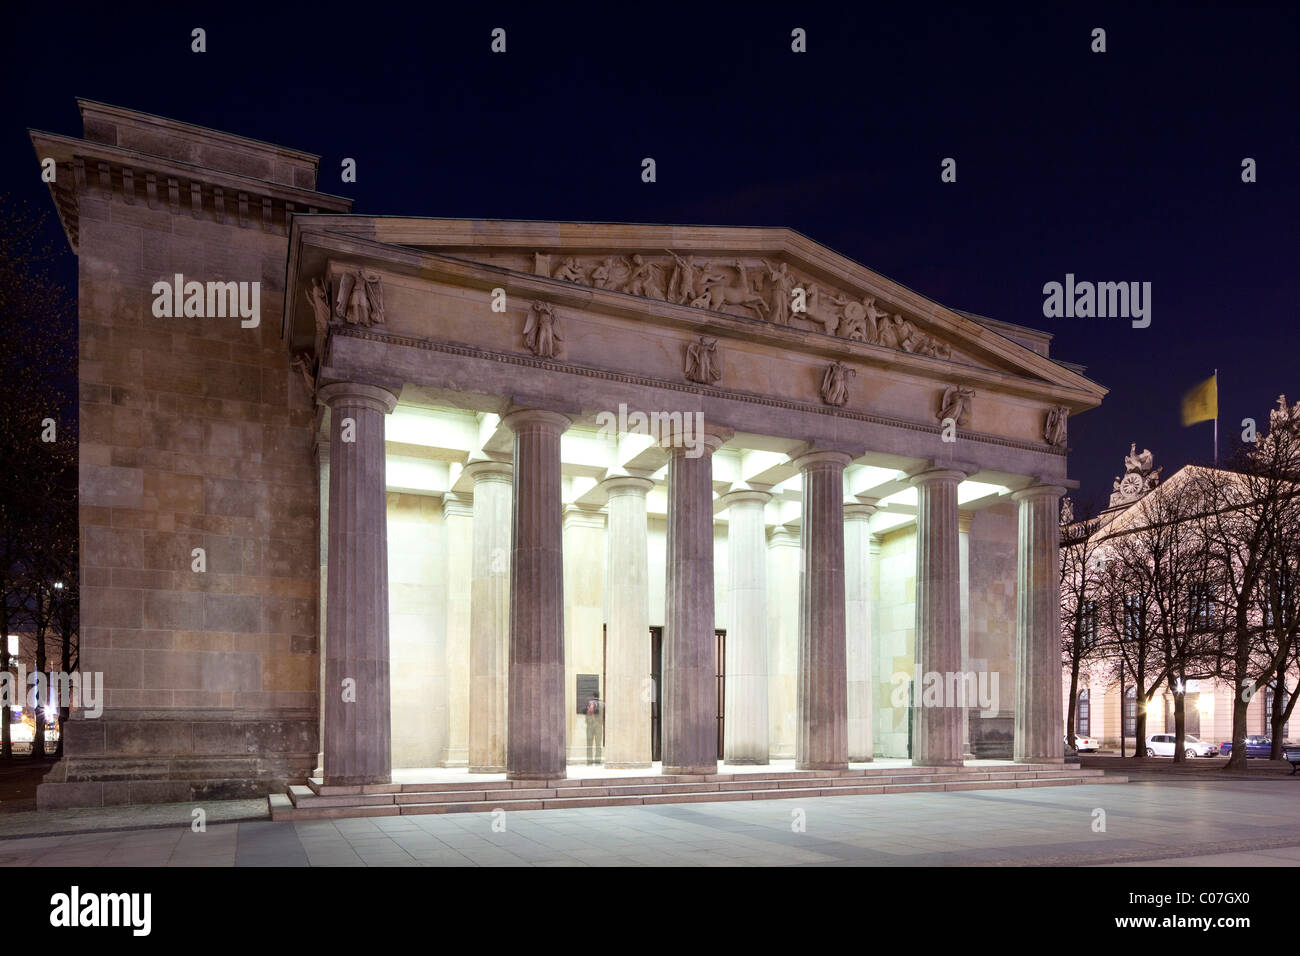 Neue Wache, Central Memorial of the Federal Republic of Germany for the Victims of War and Tyranny, Unter den Linden - Stock Image